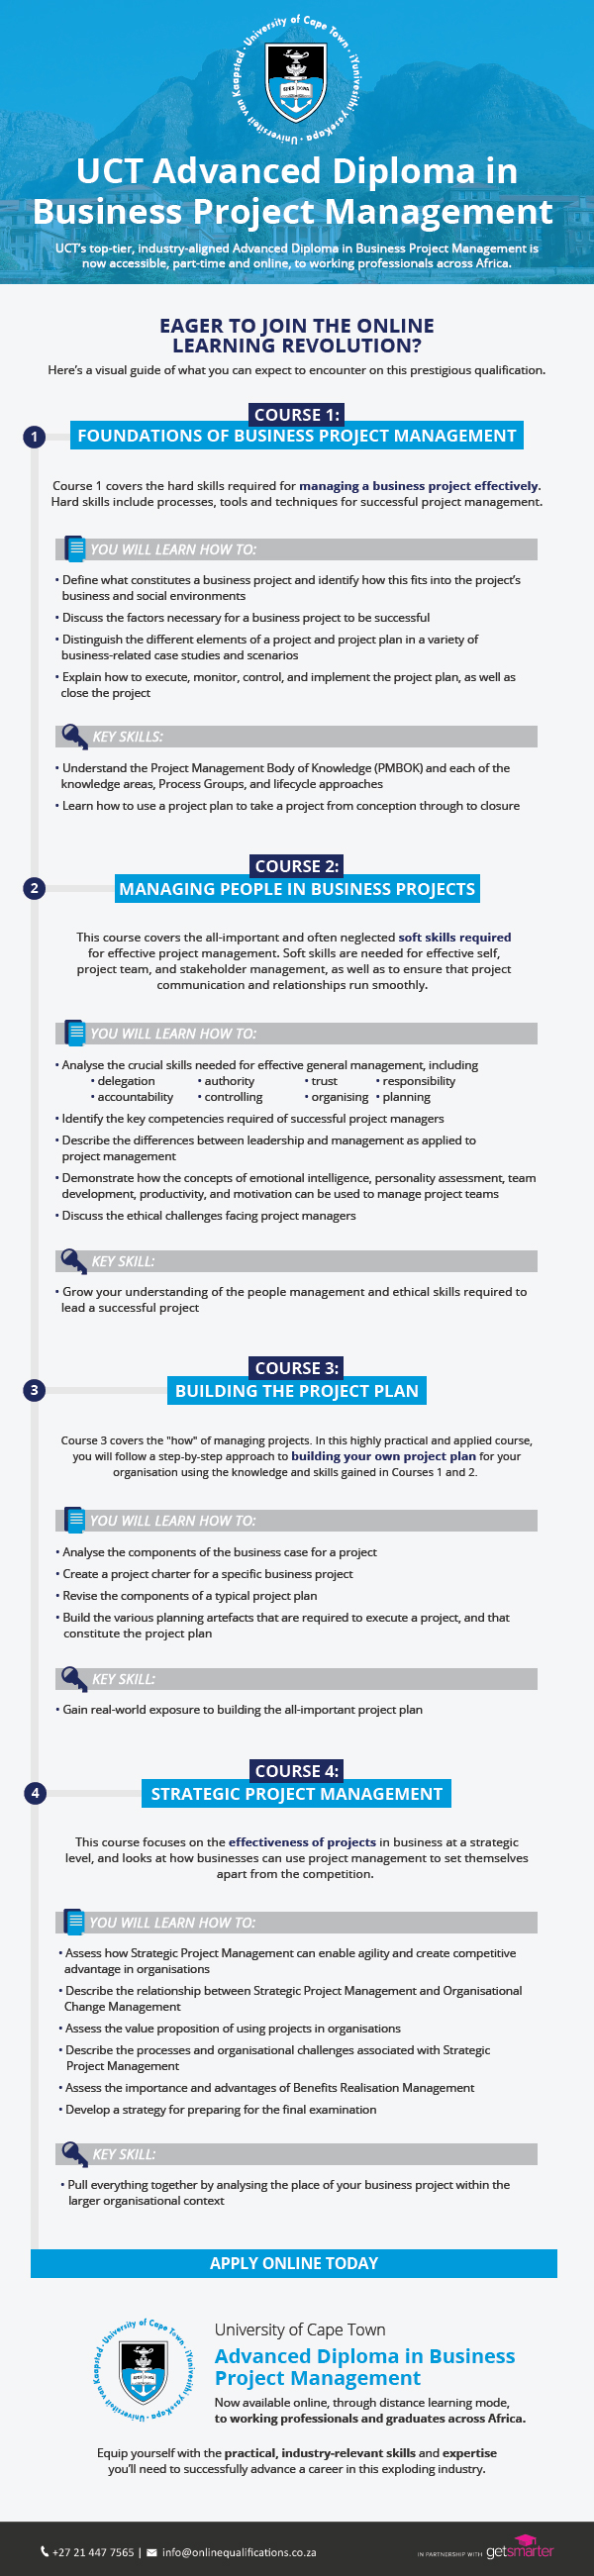 UCT-Postgrad-Business-Project-Management-course-overview